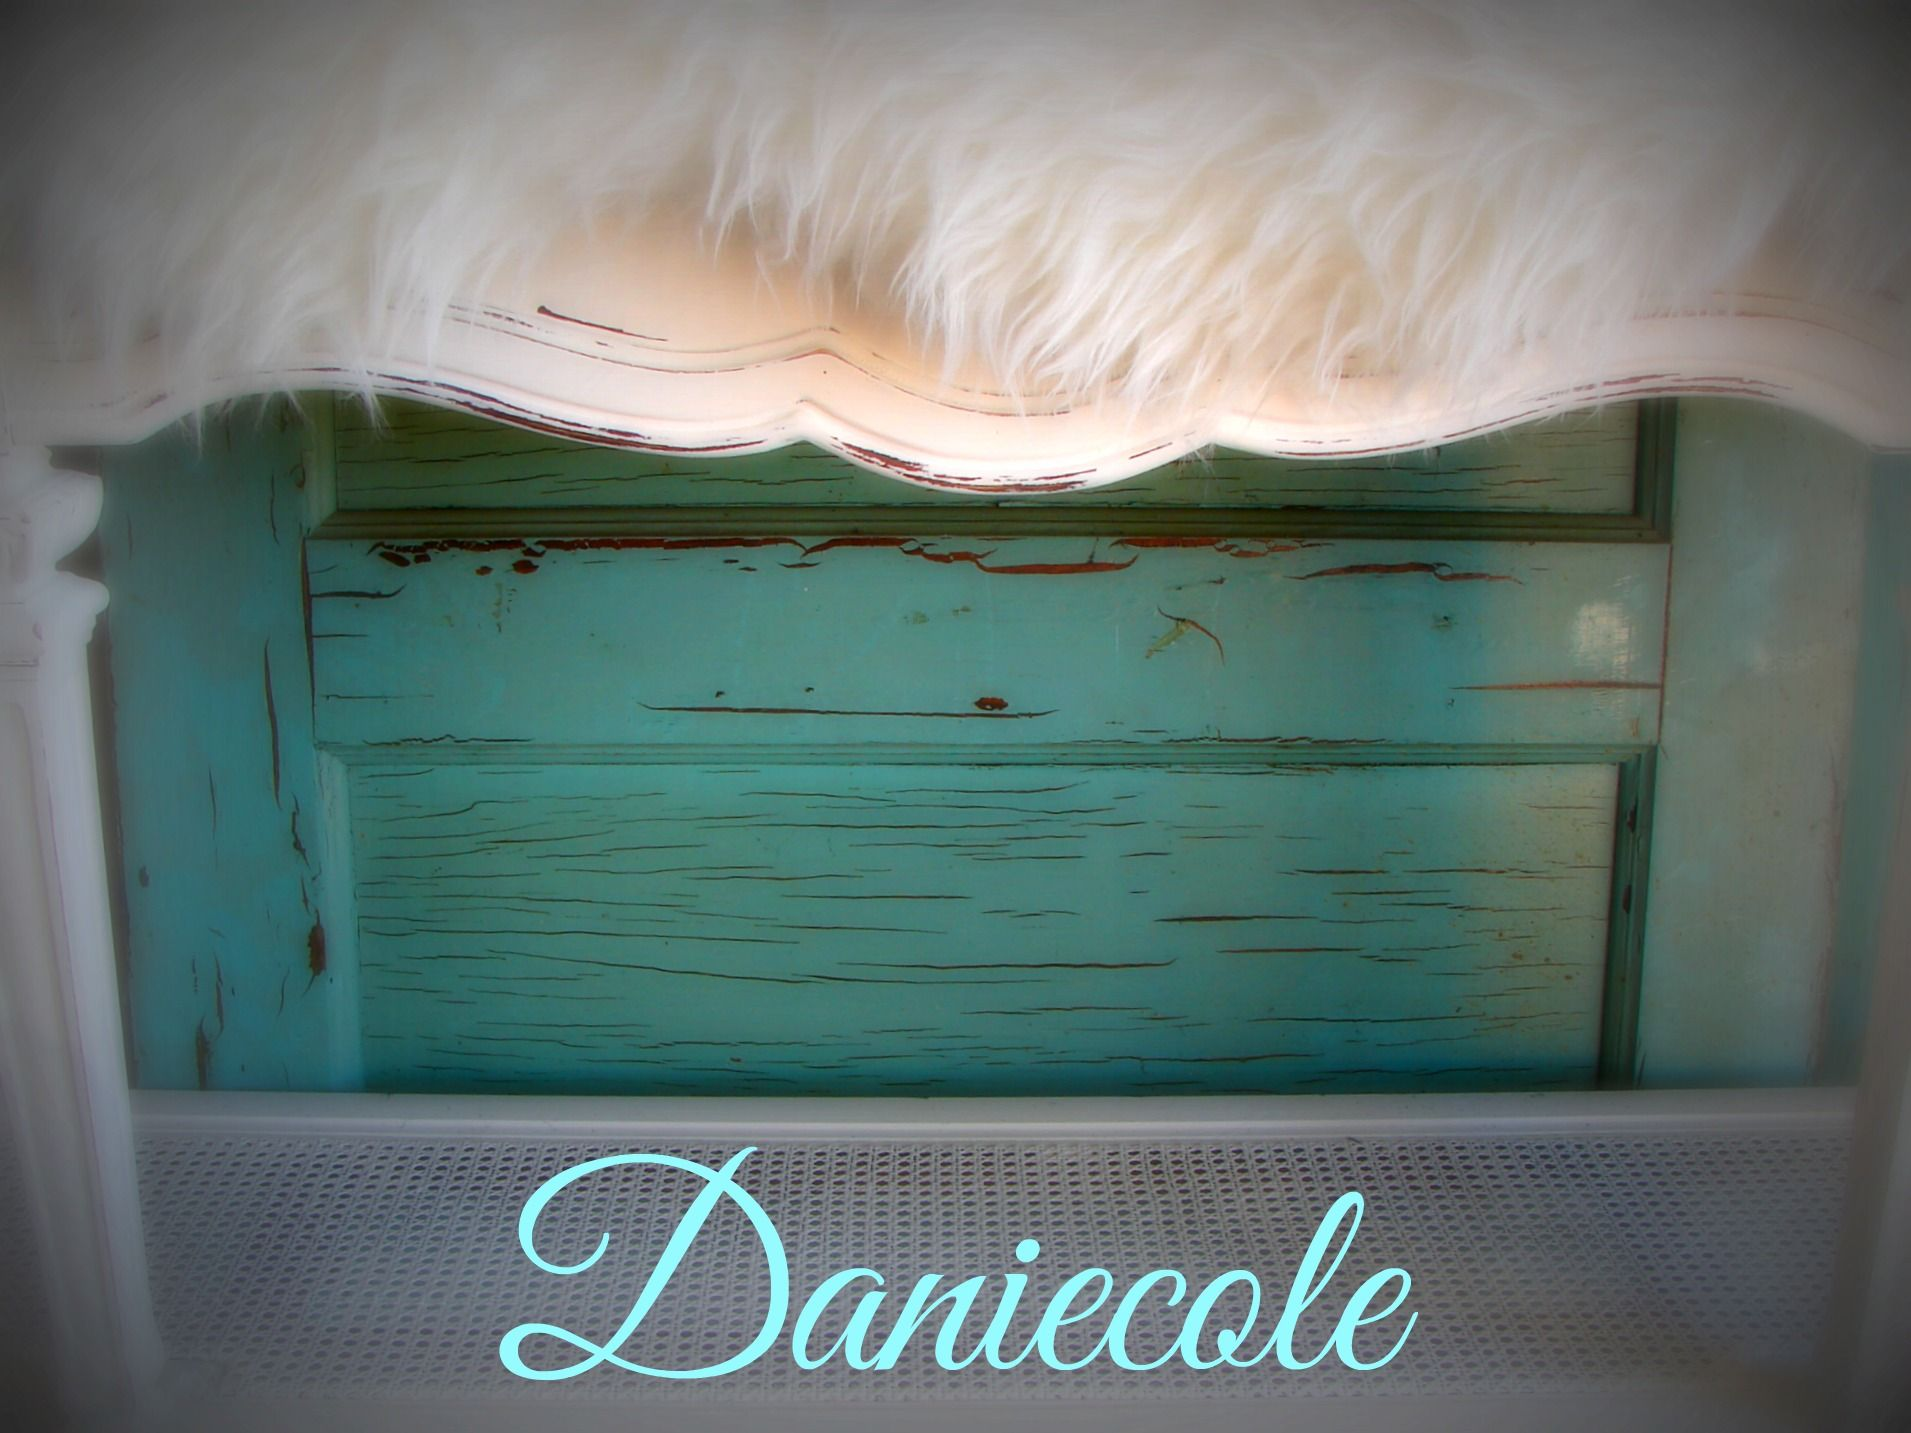 Antique Salvaged barn wood doors & shabby chic white console table by Daniecole